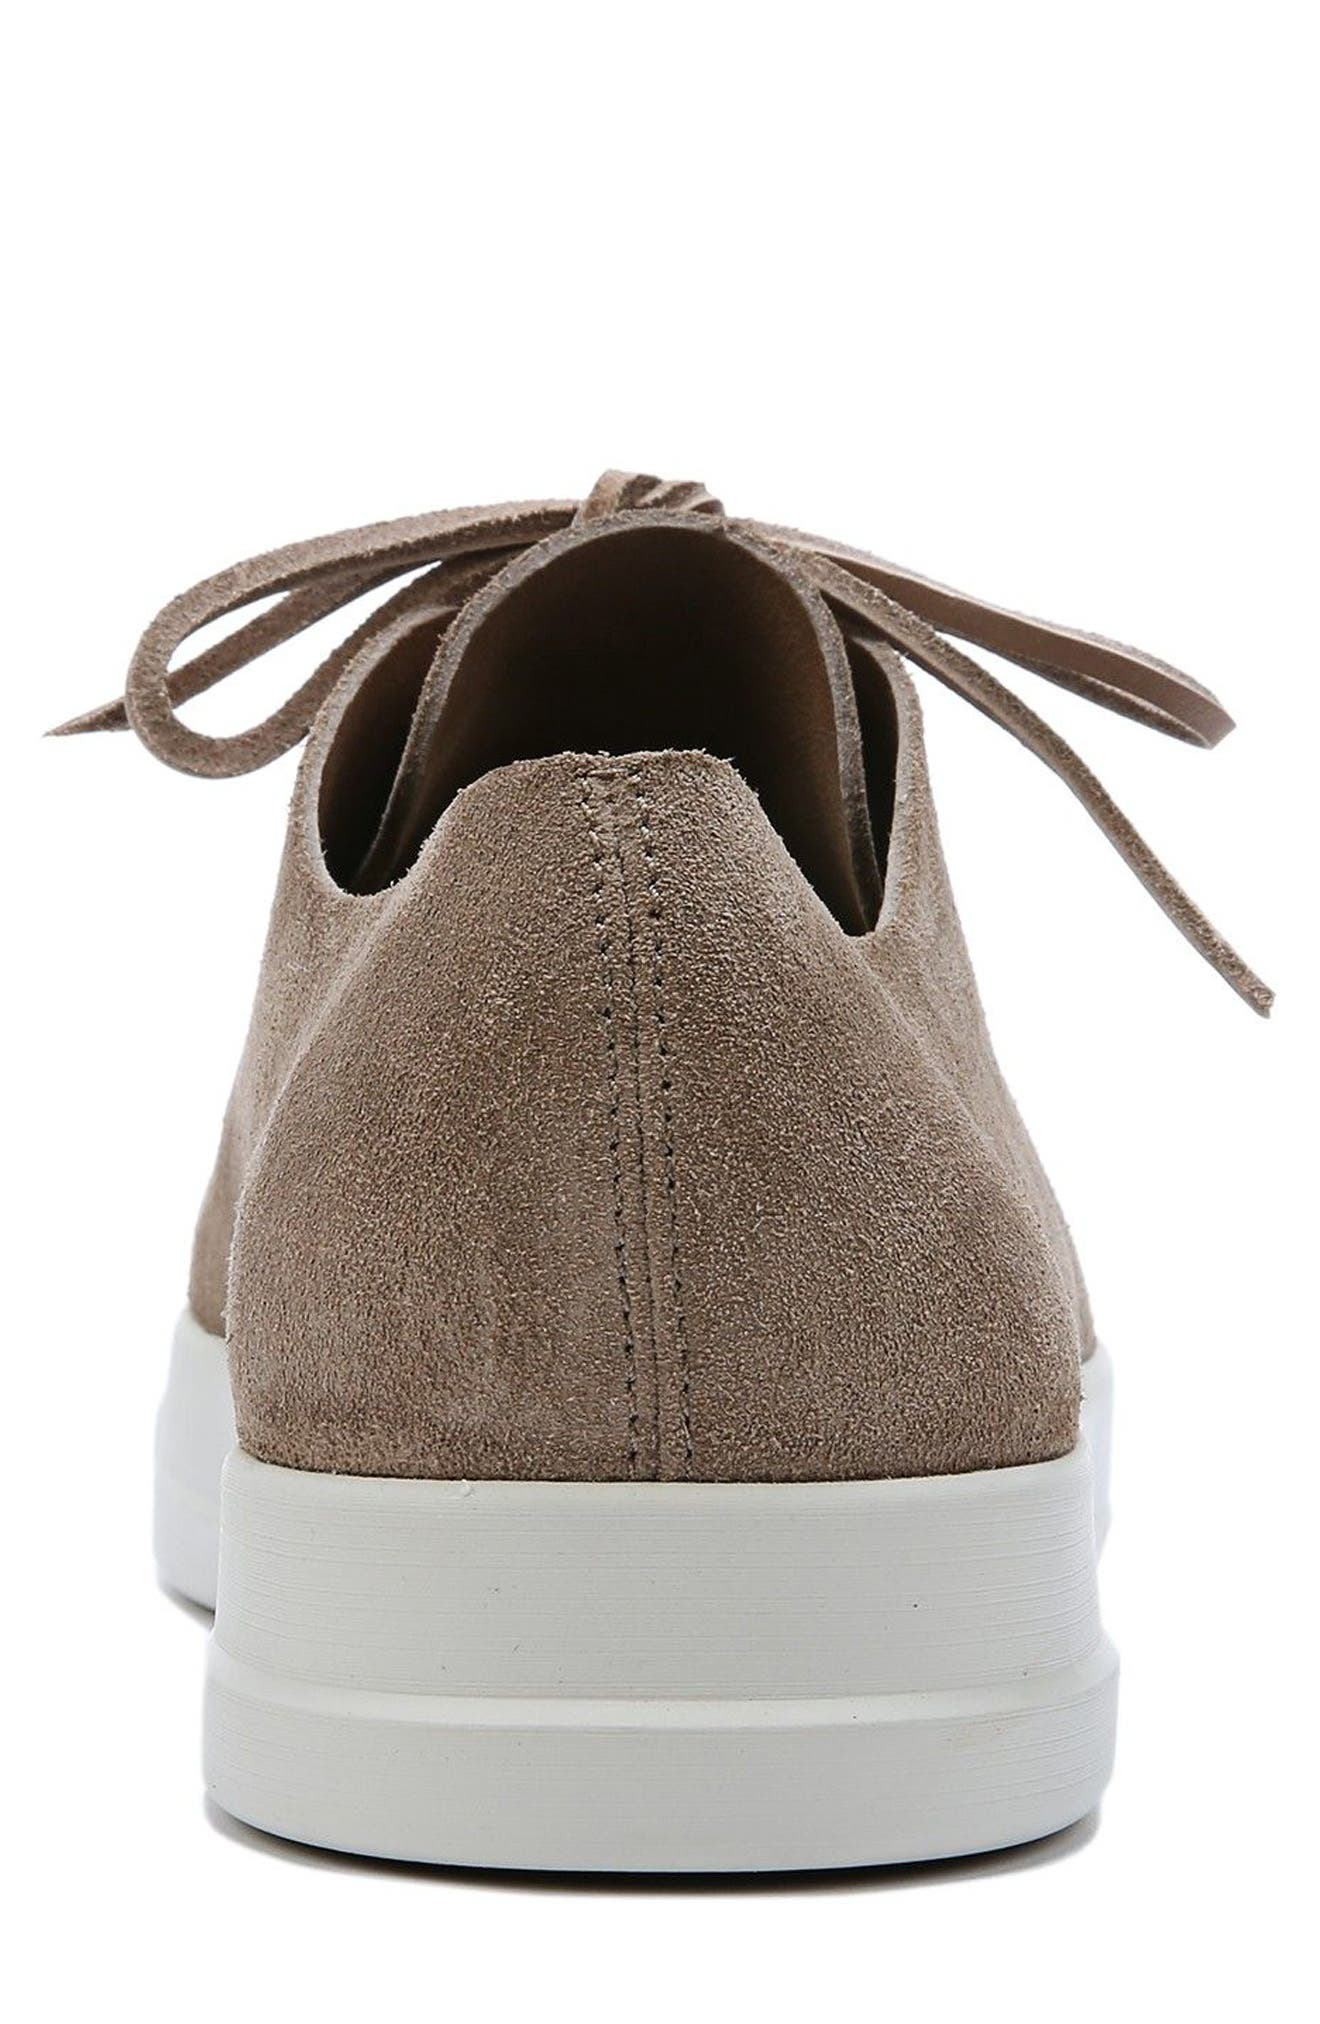 Copeland Sneaker,                             Alternate thumbnail 5, color,                             Flint Tan Suede